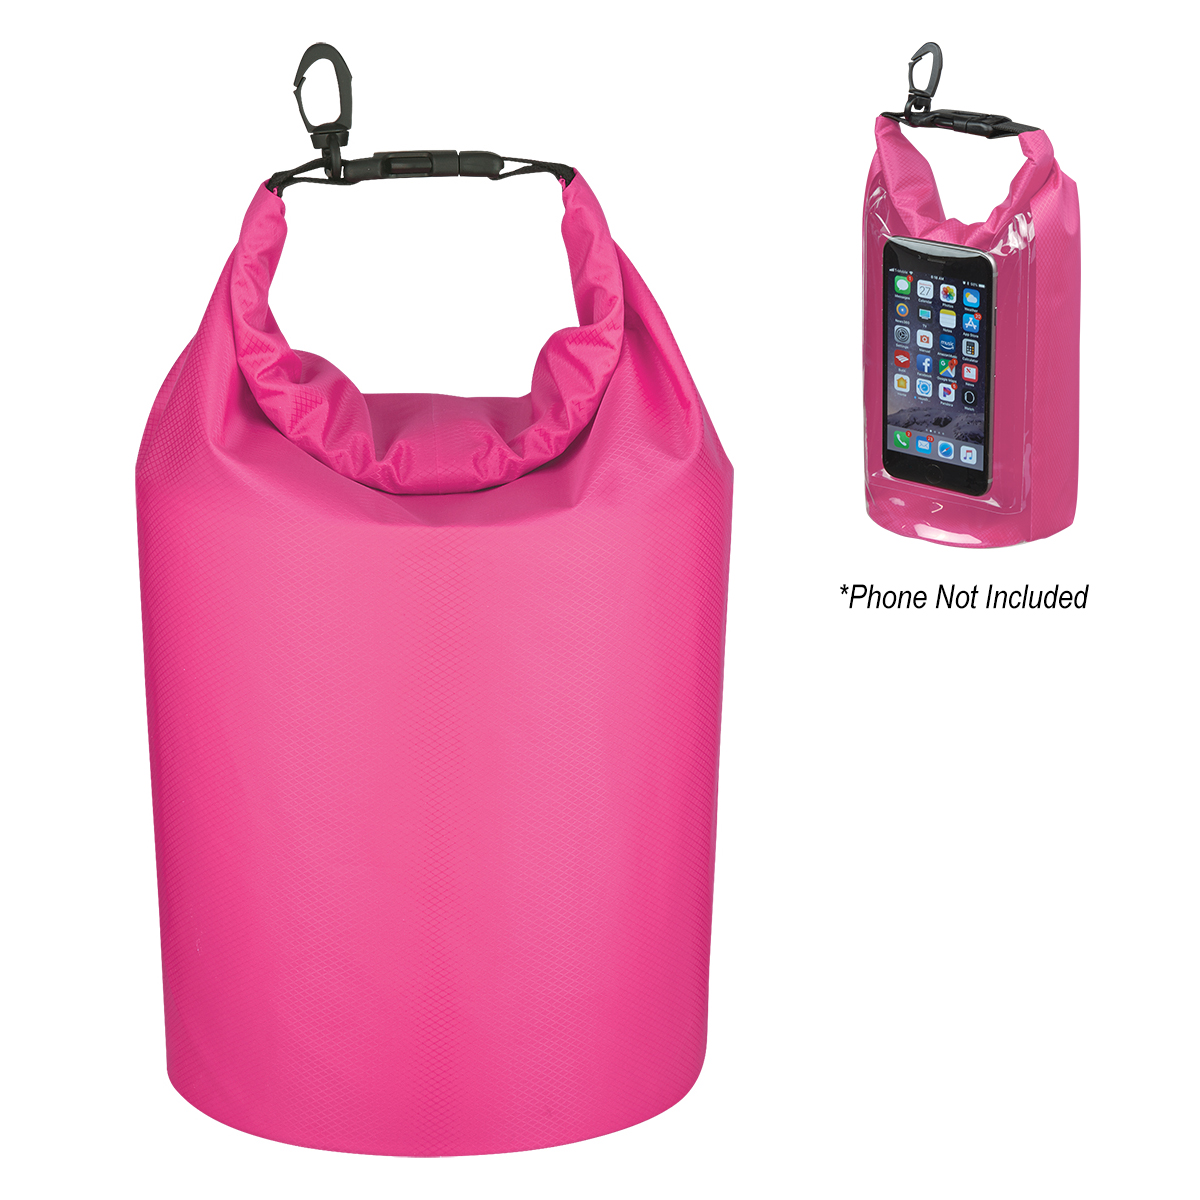 Printed Waterproof Dry Bag With Window